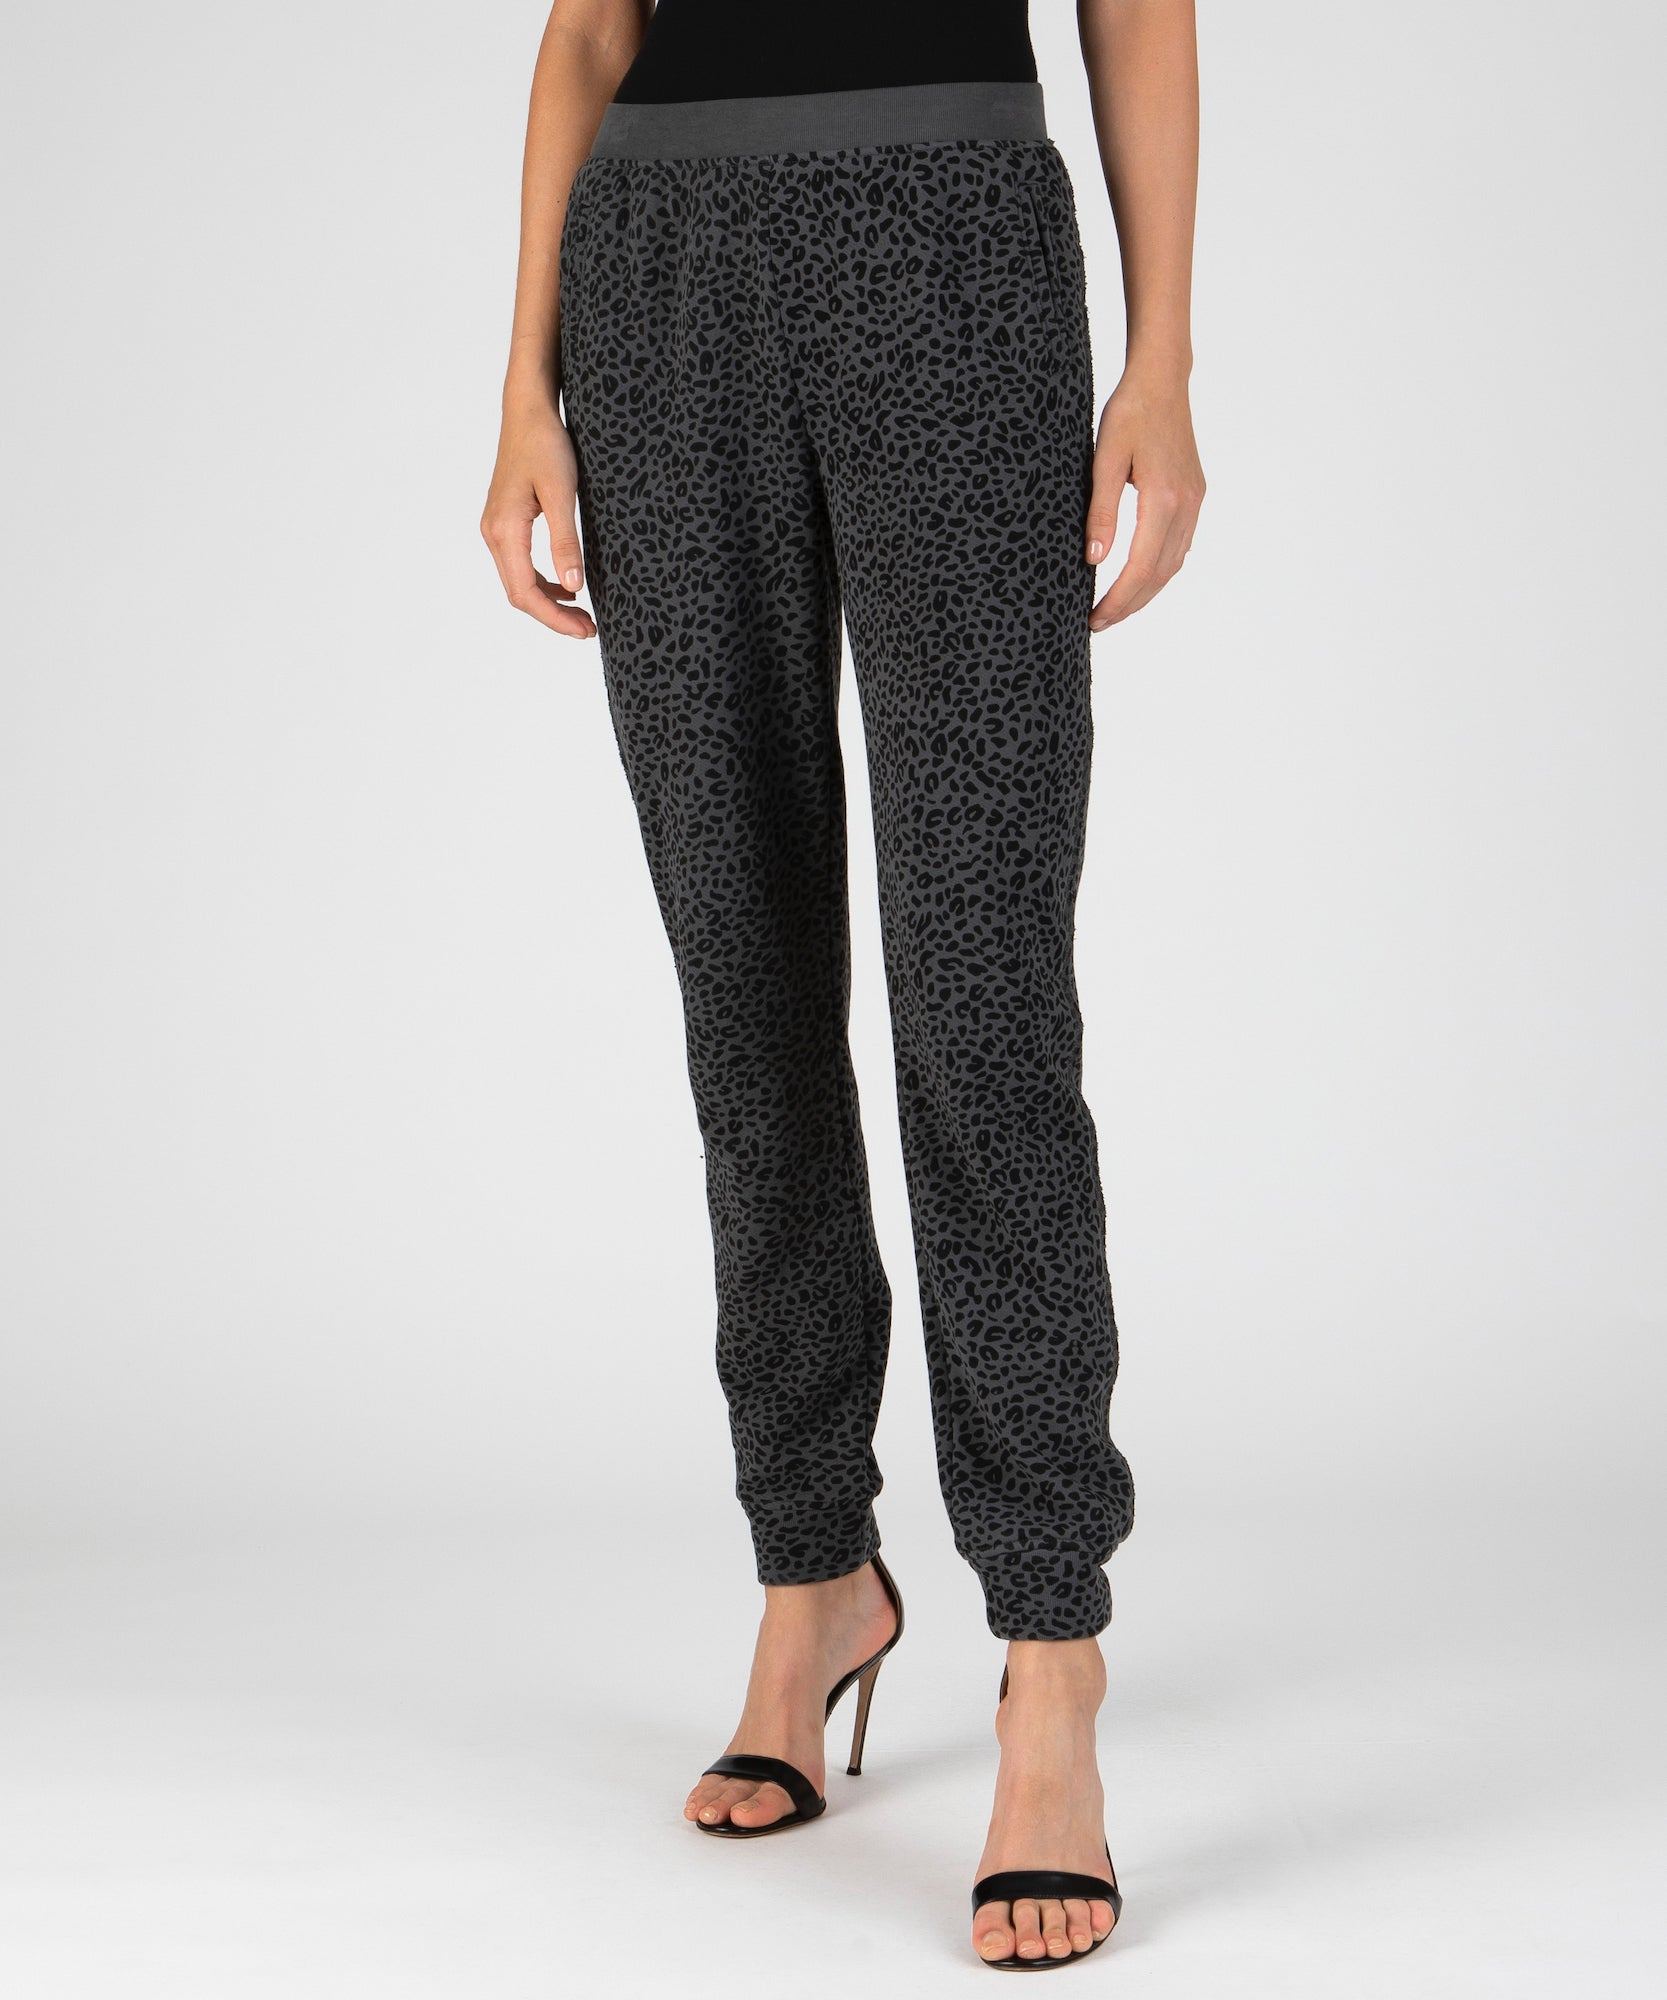 Asphalt and Black French Terry Mini Animal Print Sweatpants - Women's Luxe Loungewear by ATM Anthony Thomas Melillo